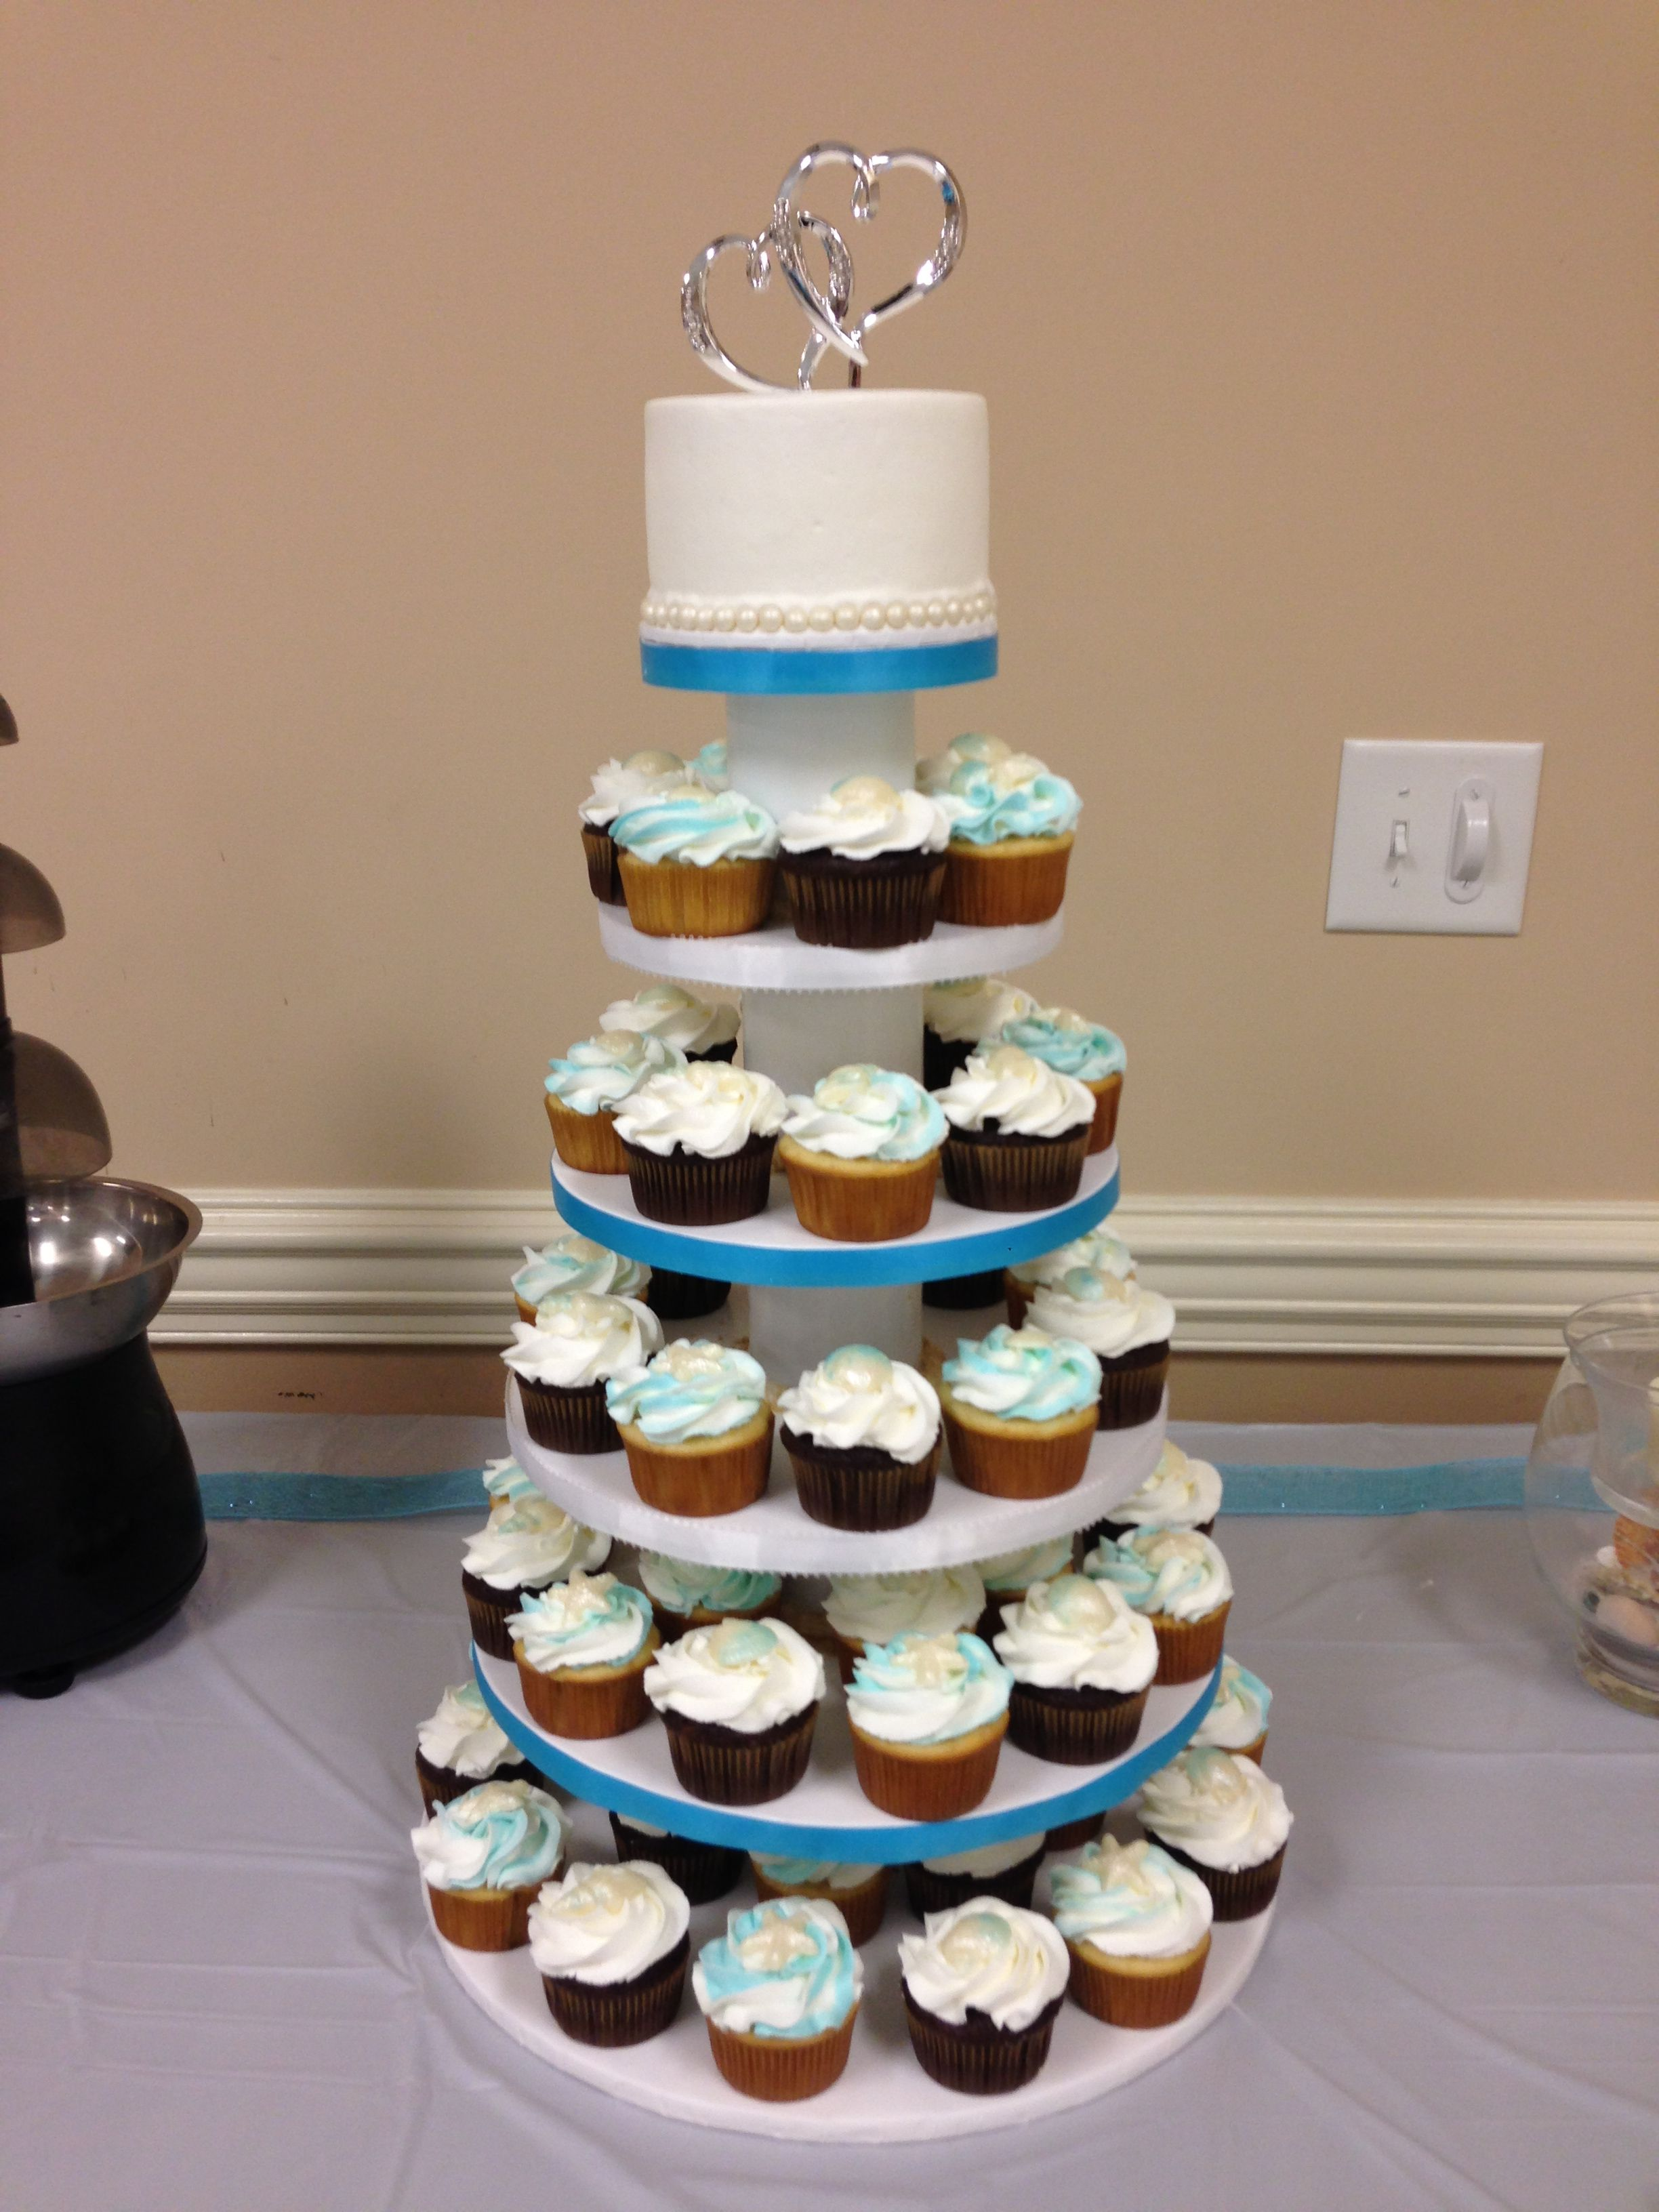 Beach themed wedding cupcake tower. Wedding cupcake tower is 6-8-10-12-14-16. Held small 5 inch cake for 1st anniversary and 64 cupcakes with white chocolate shells.